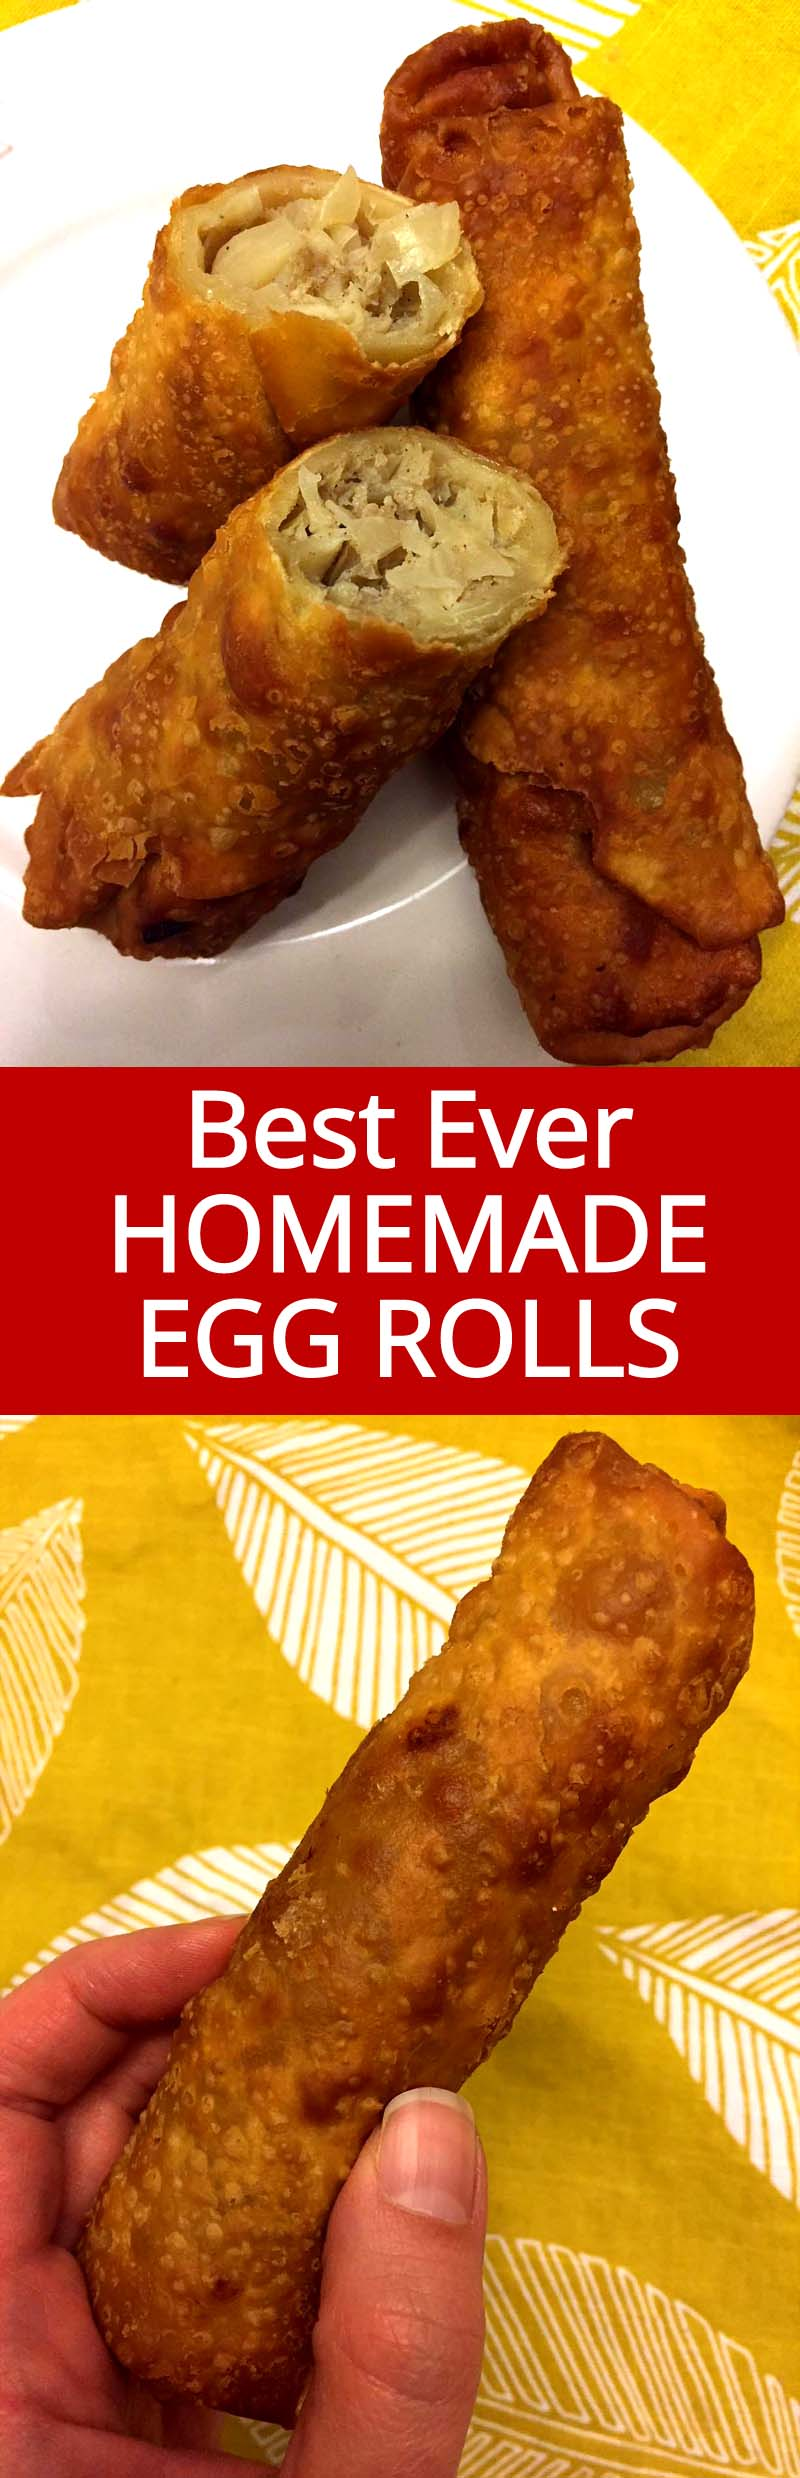 These homemade egg rolls taste exactly like the ones from a Chinese restaurant! Who needs takeout when you can make these easy egg rolls at home! So yummy!